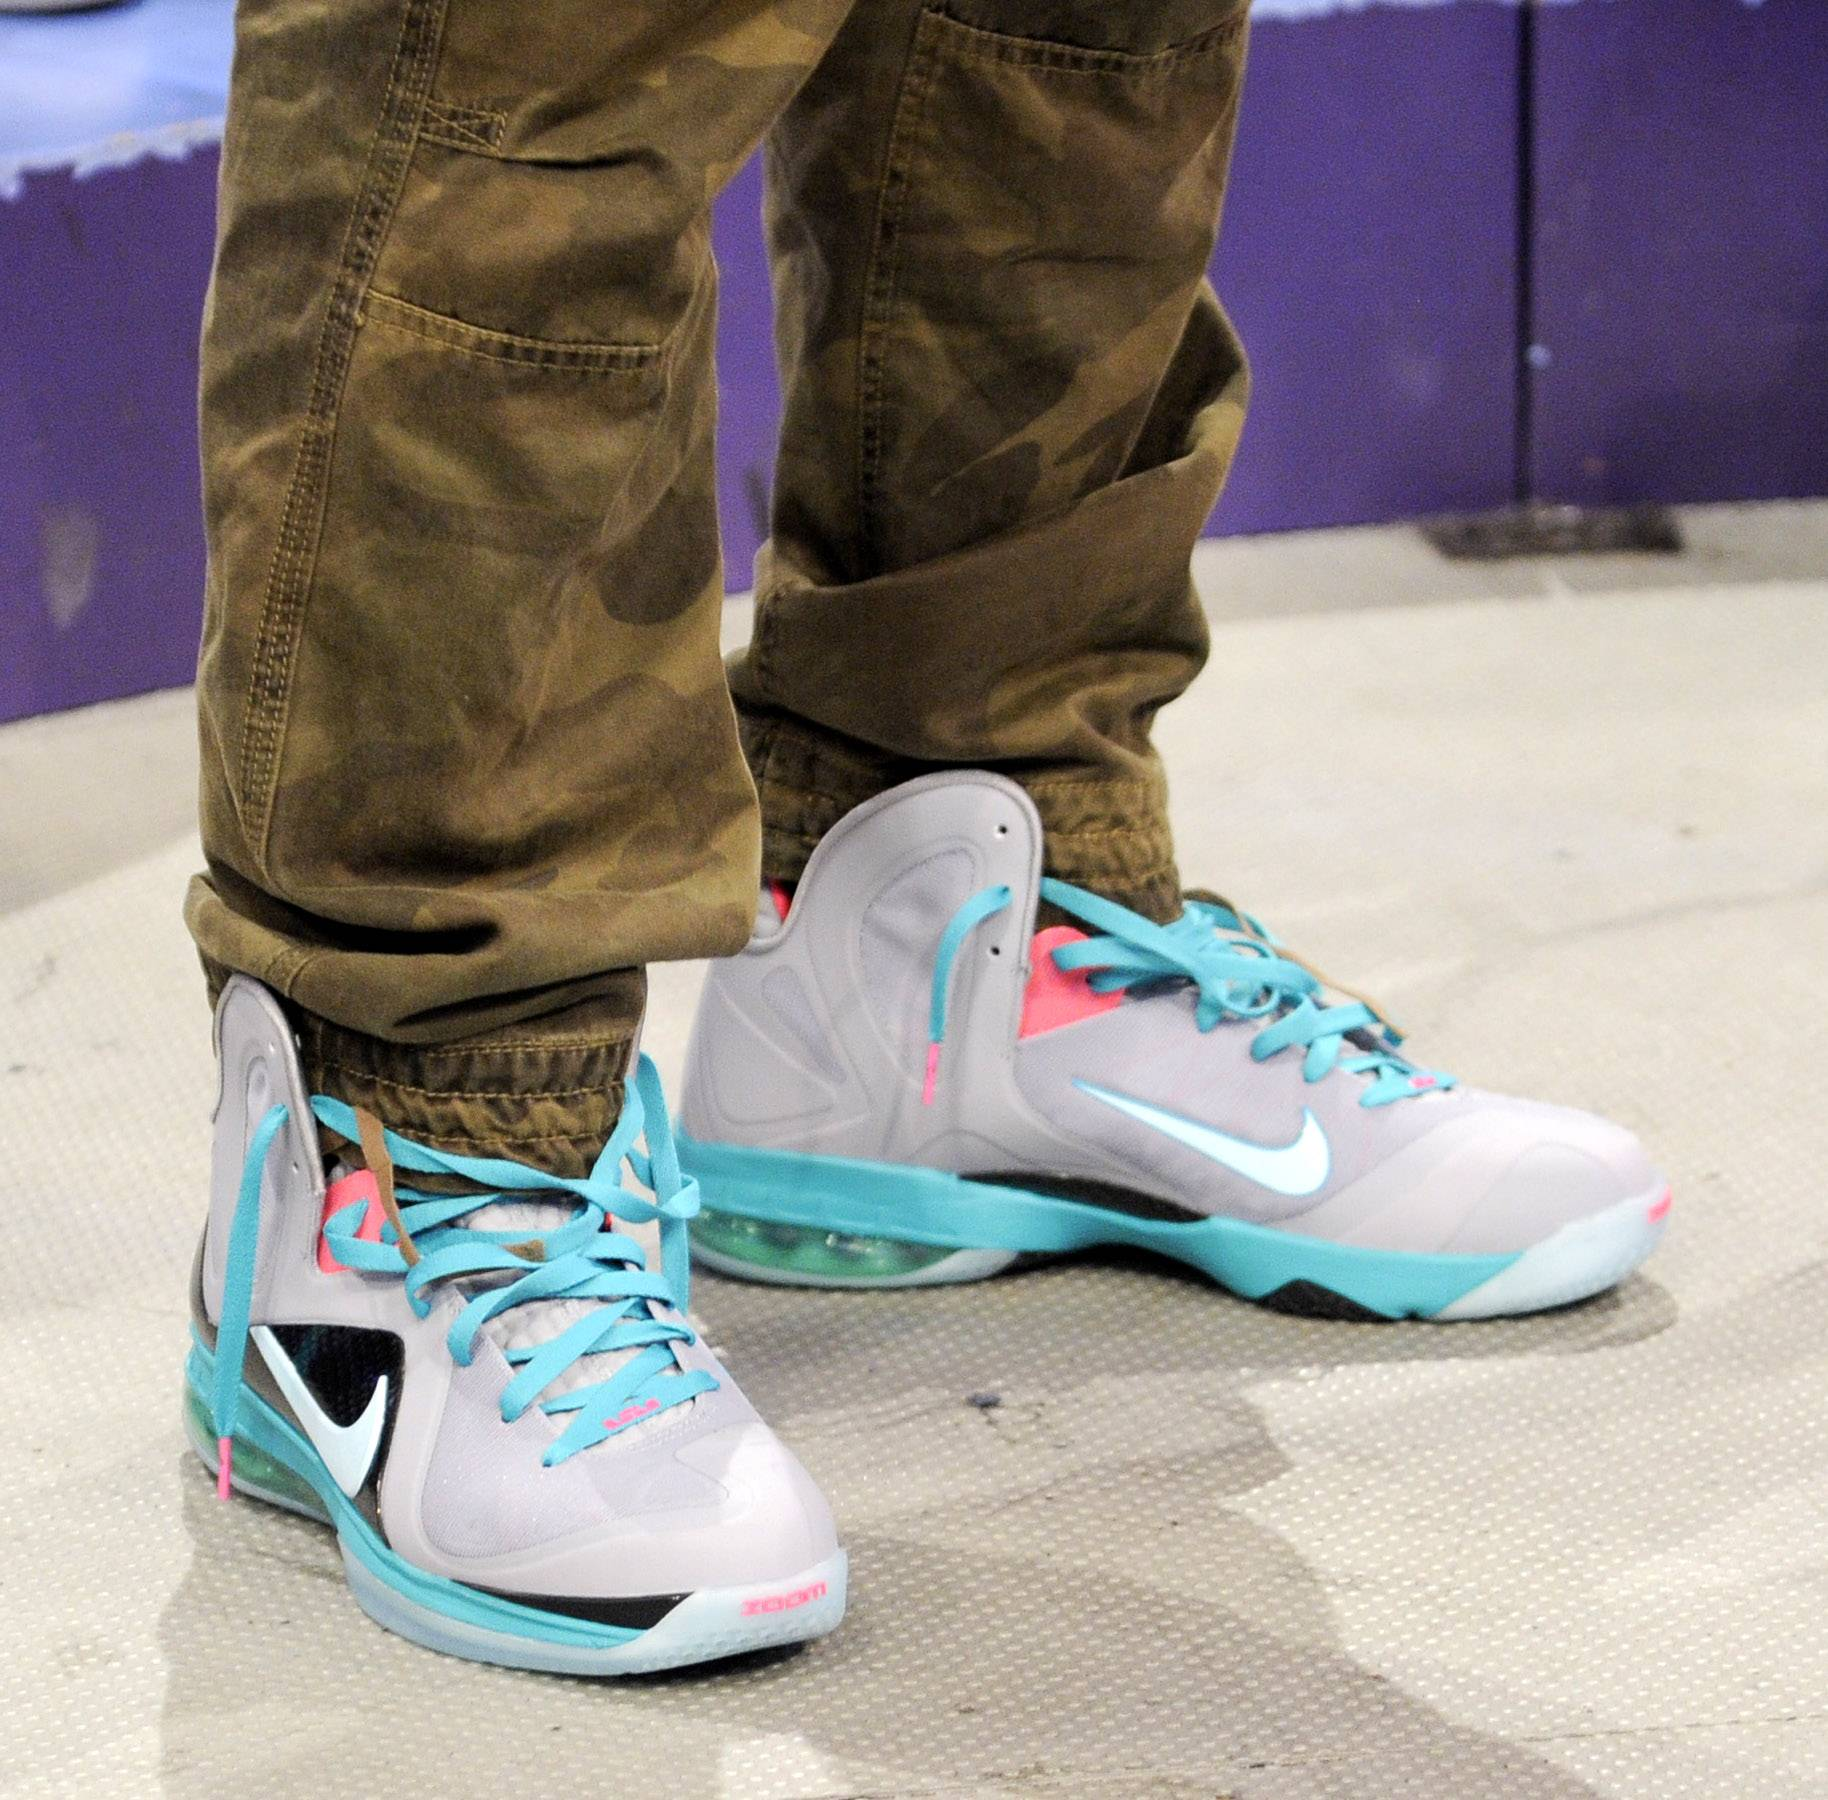 Shoe game crazy - Kyrie Irving at 106 & Park, May 16, 2012. (Photo: John Ricard / BET)